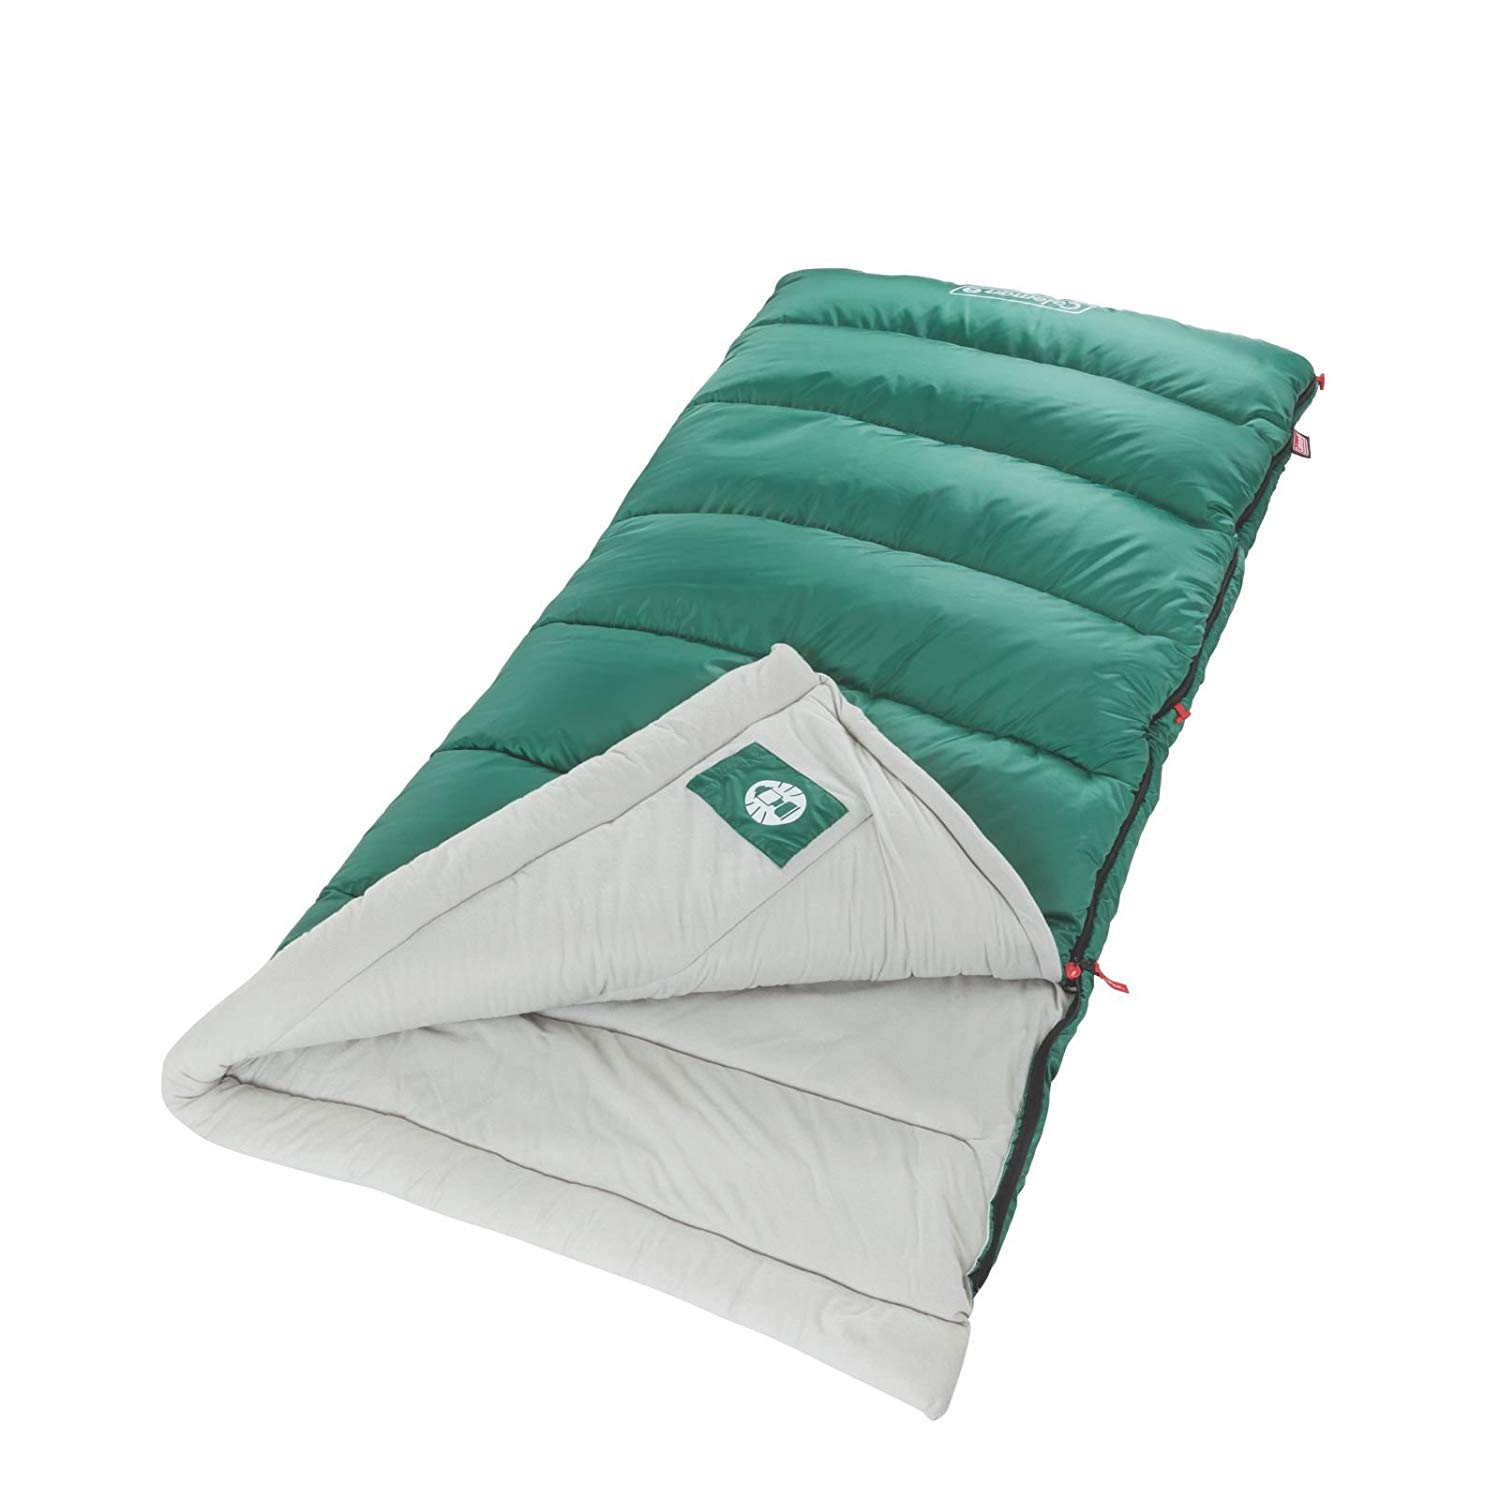 An image of Coleman Autumn Glen 2000029007 Men's Sleeping Bag